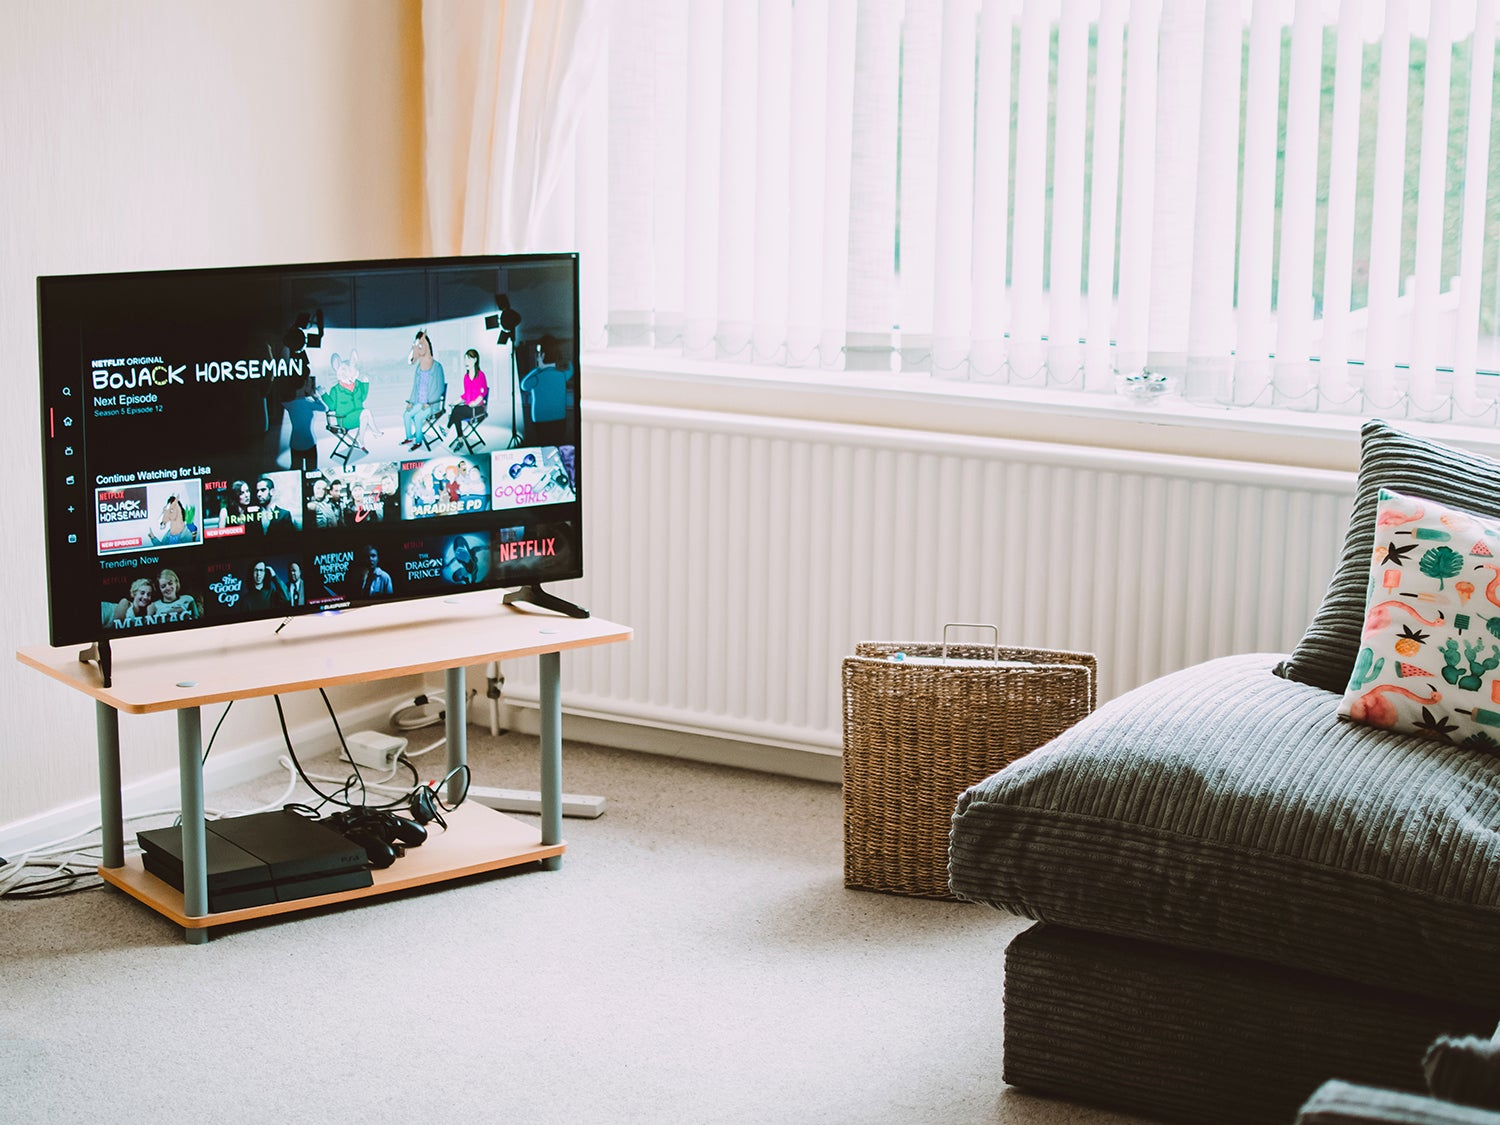 A TV set in a living room